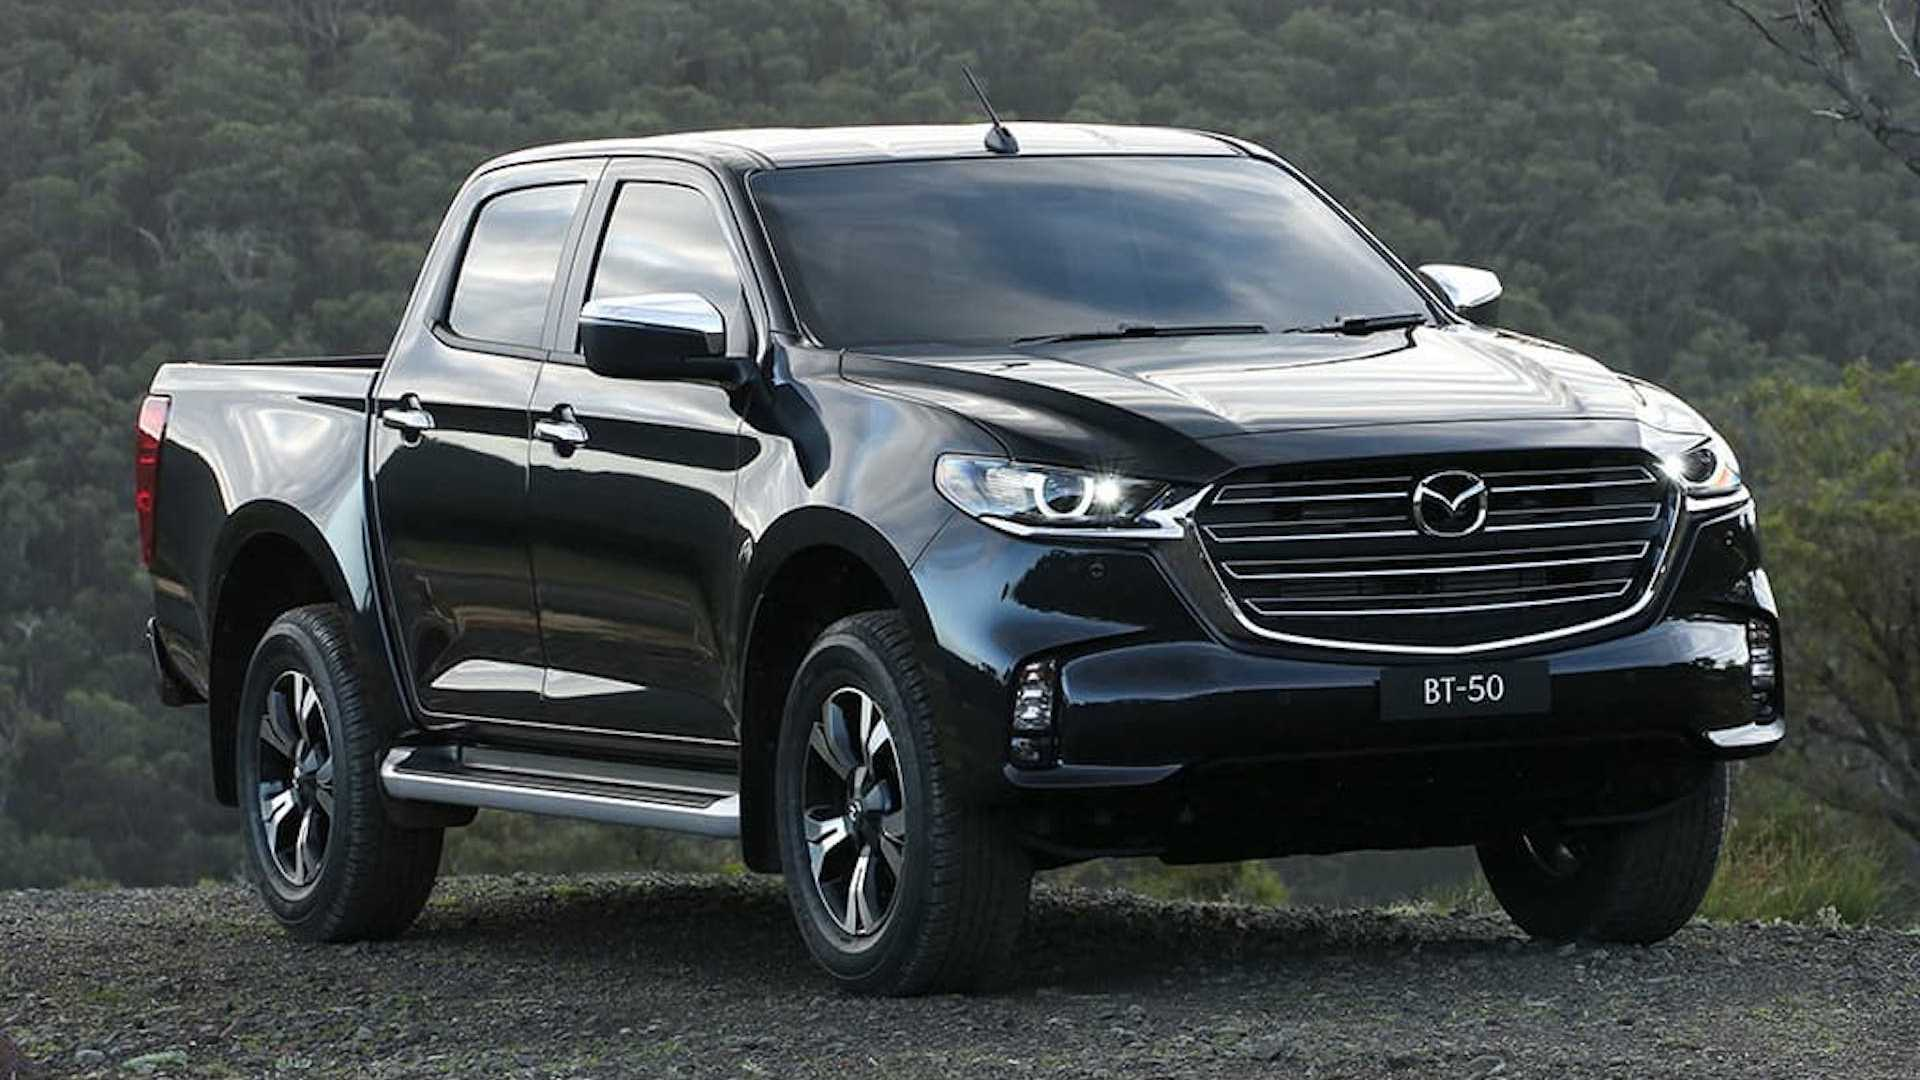 Mazda Reveals the All new BT-50 Pickup Truck 5